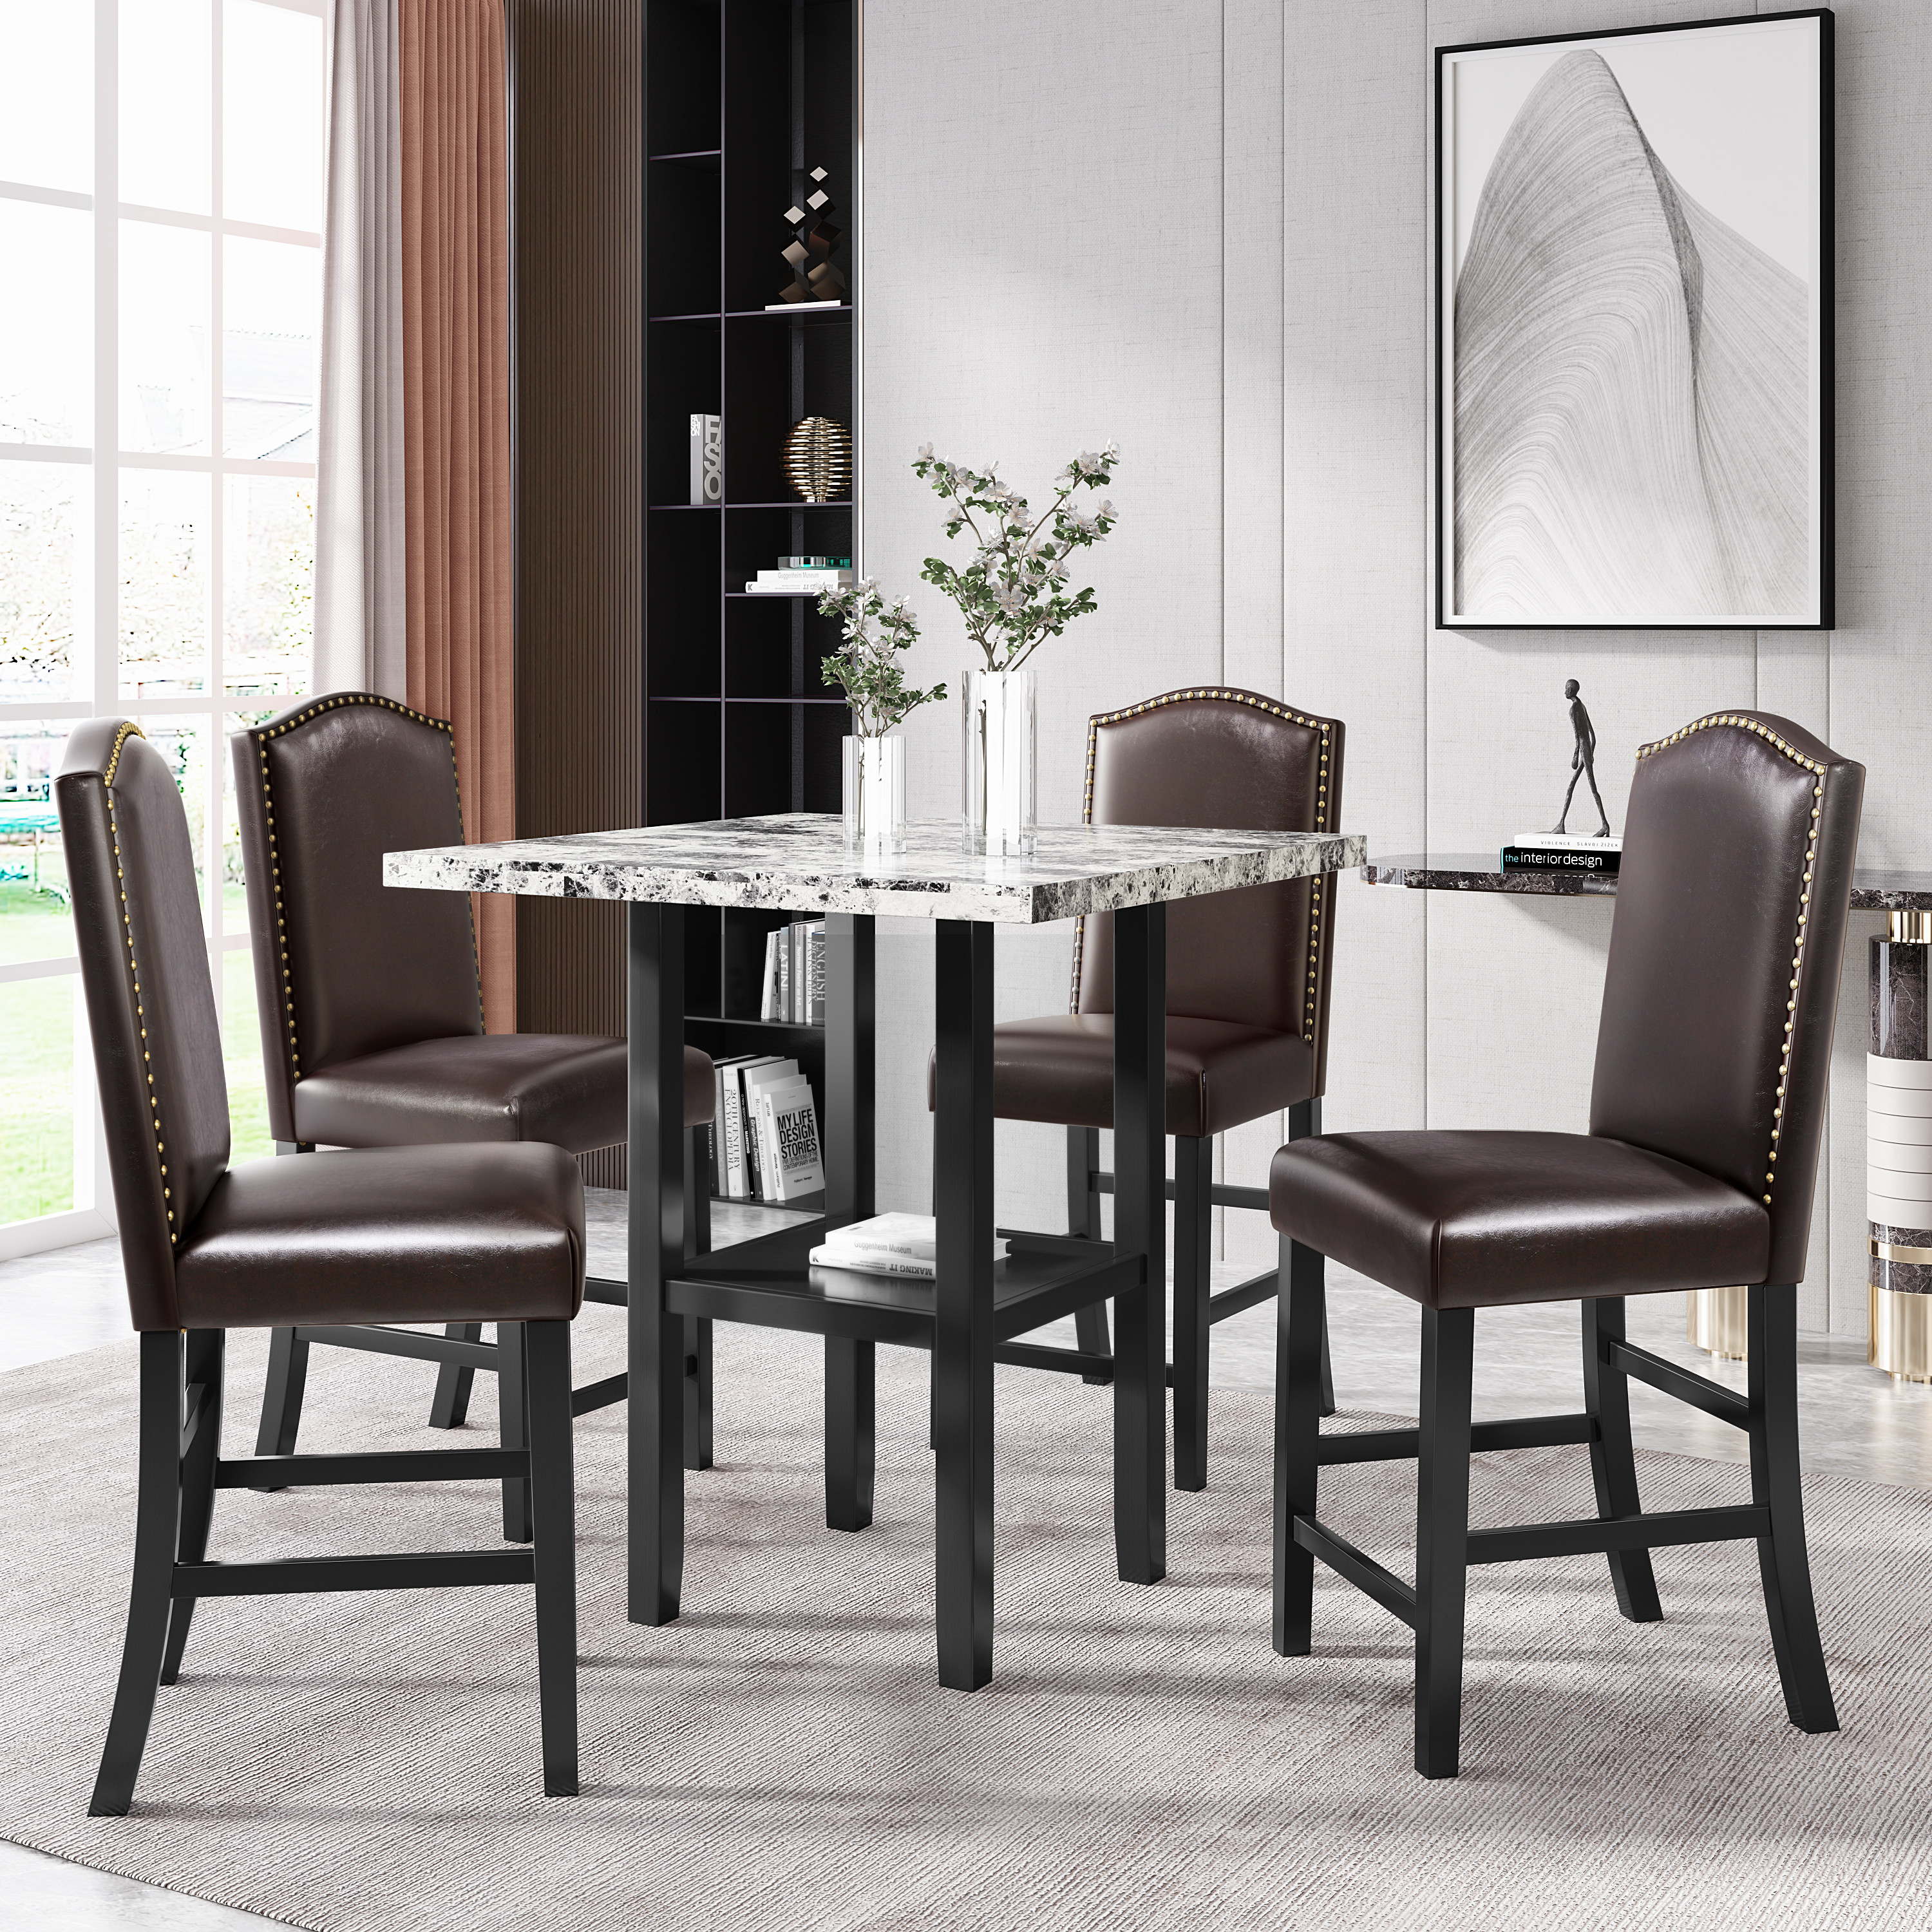 Heavy Duty Dining Room Sets Off 72, Heavy Duty Dining Room Furniture